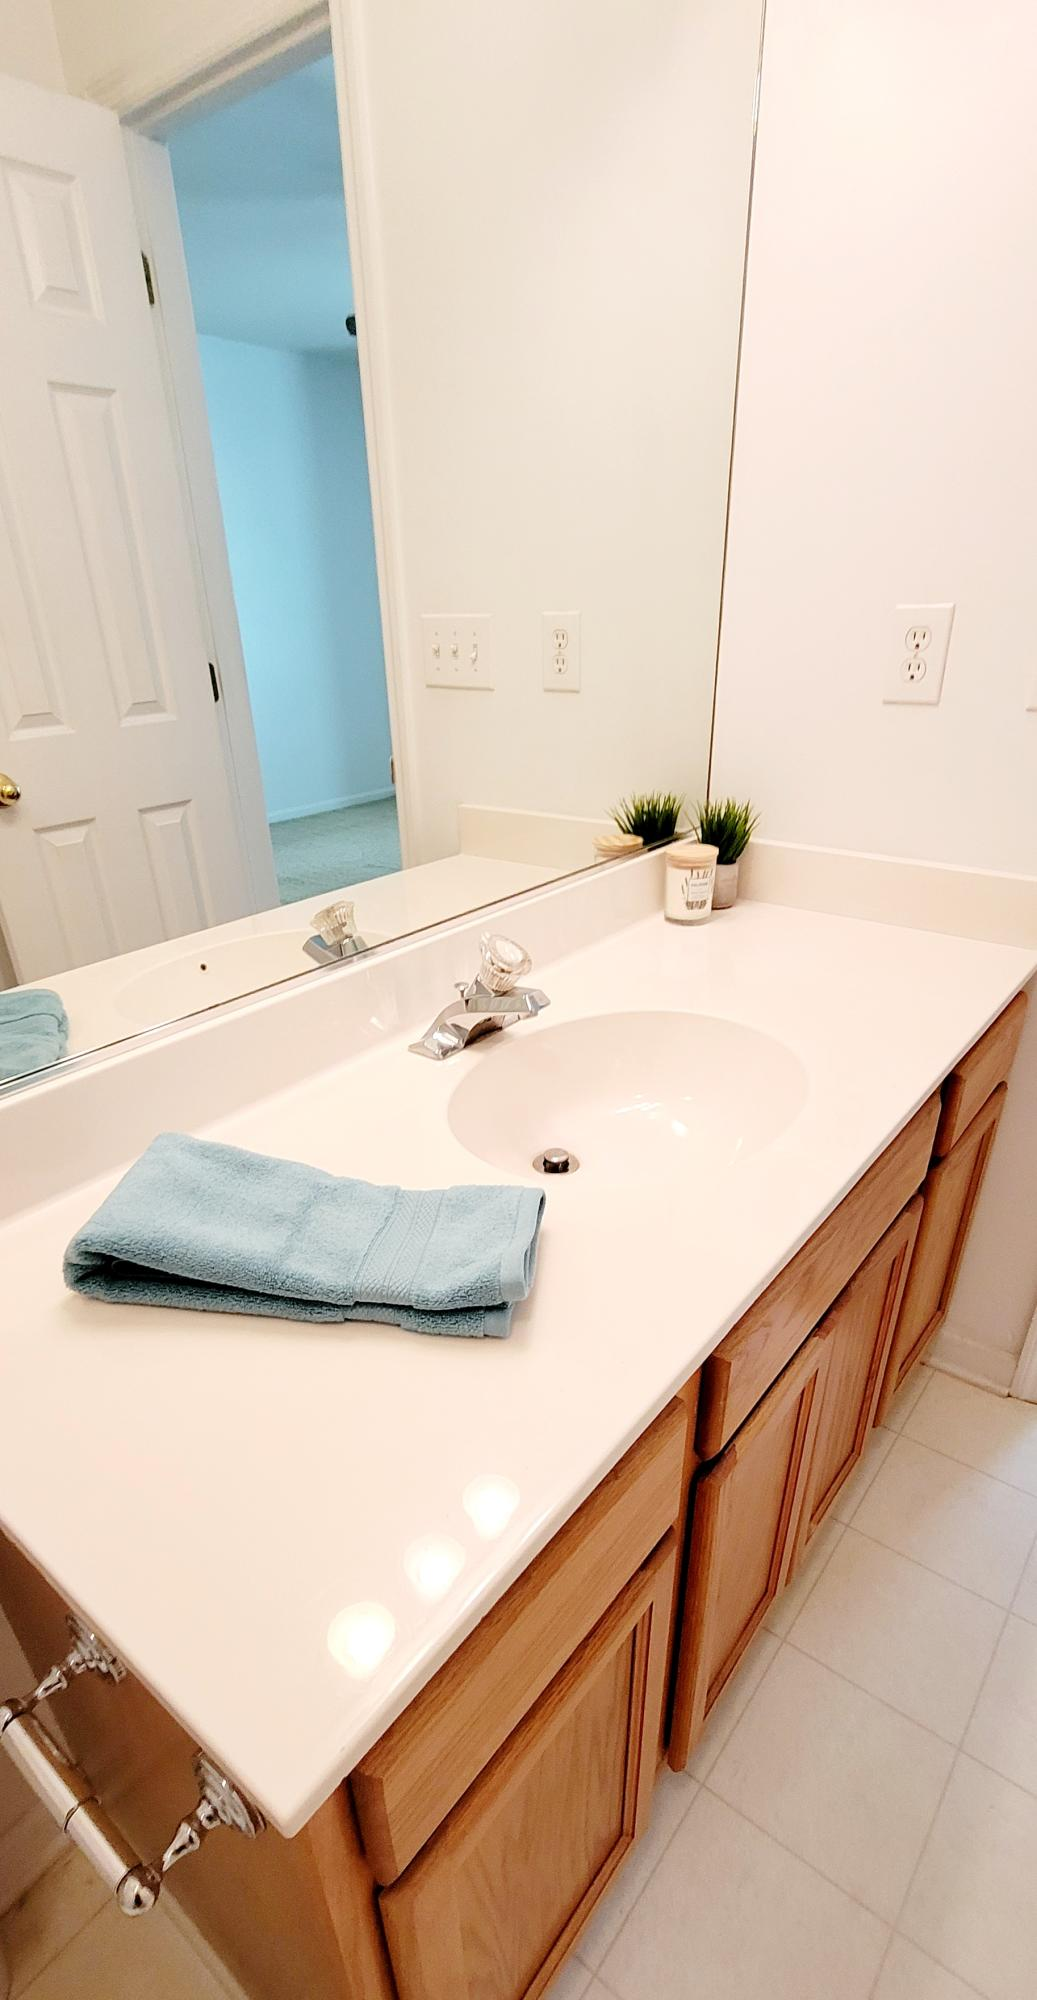 Rivers Point Row Homes For Sale - 37 Rivers Point, Charleston, SC - 24